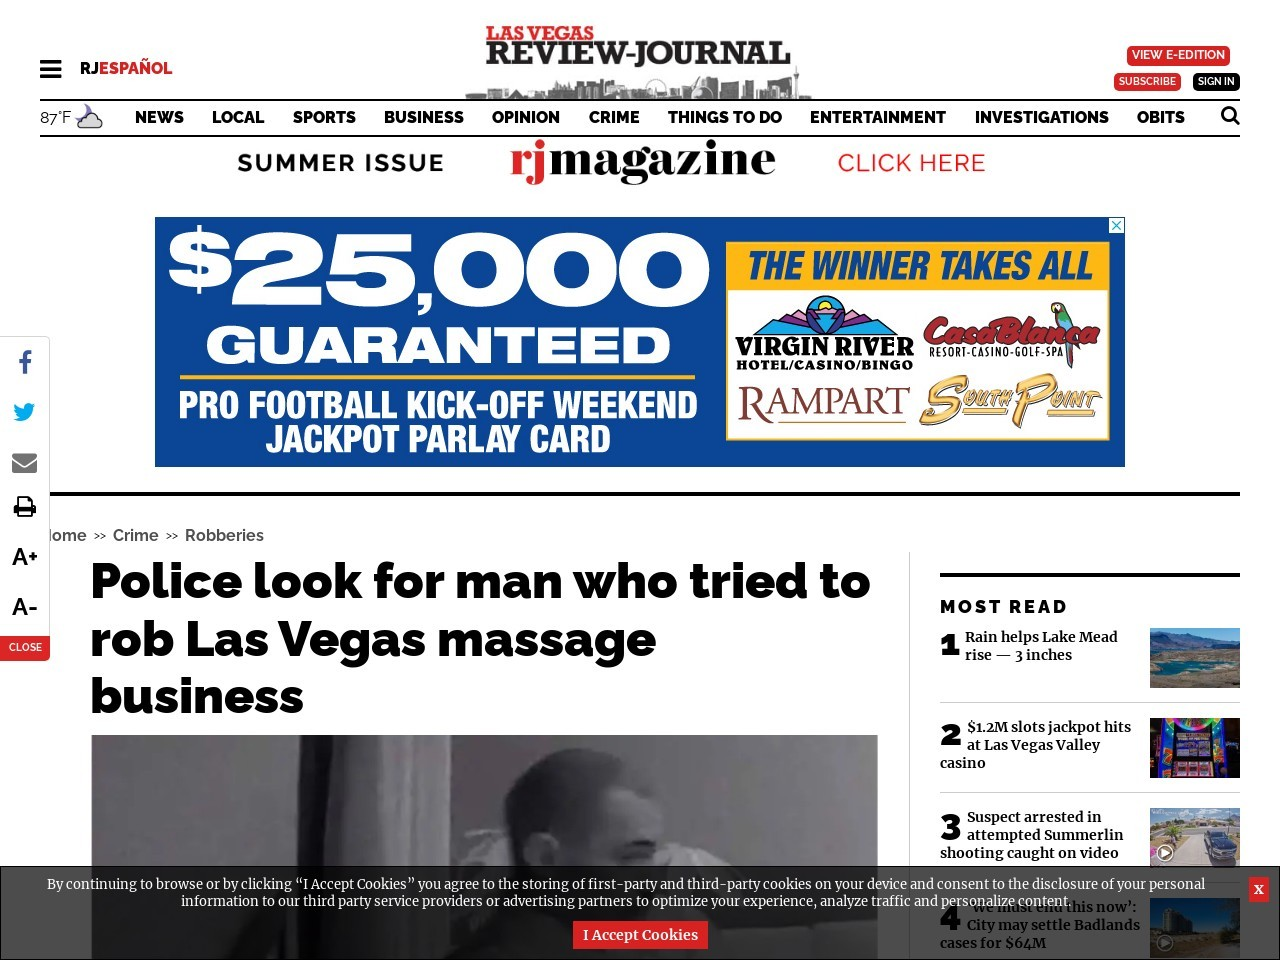 Police look for man who tried to rob Las Vegas massage business